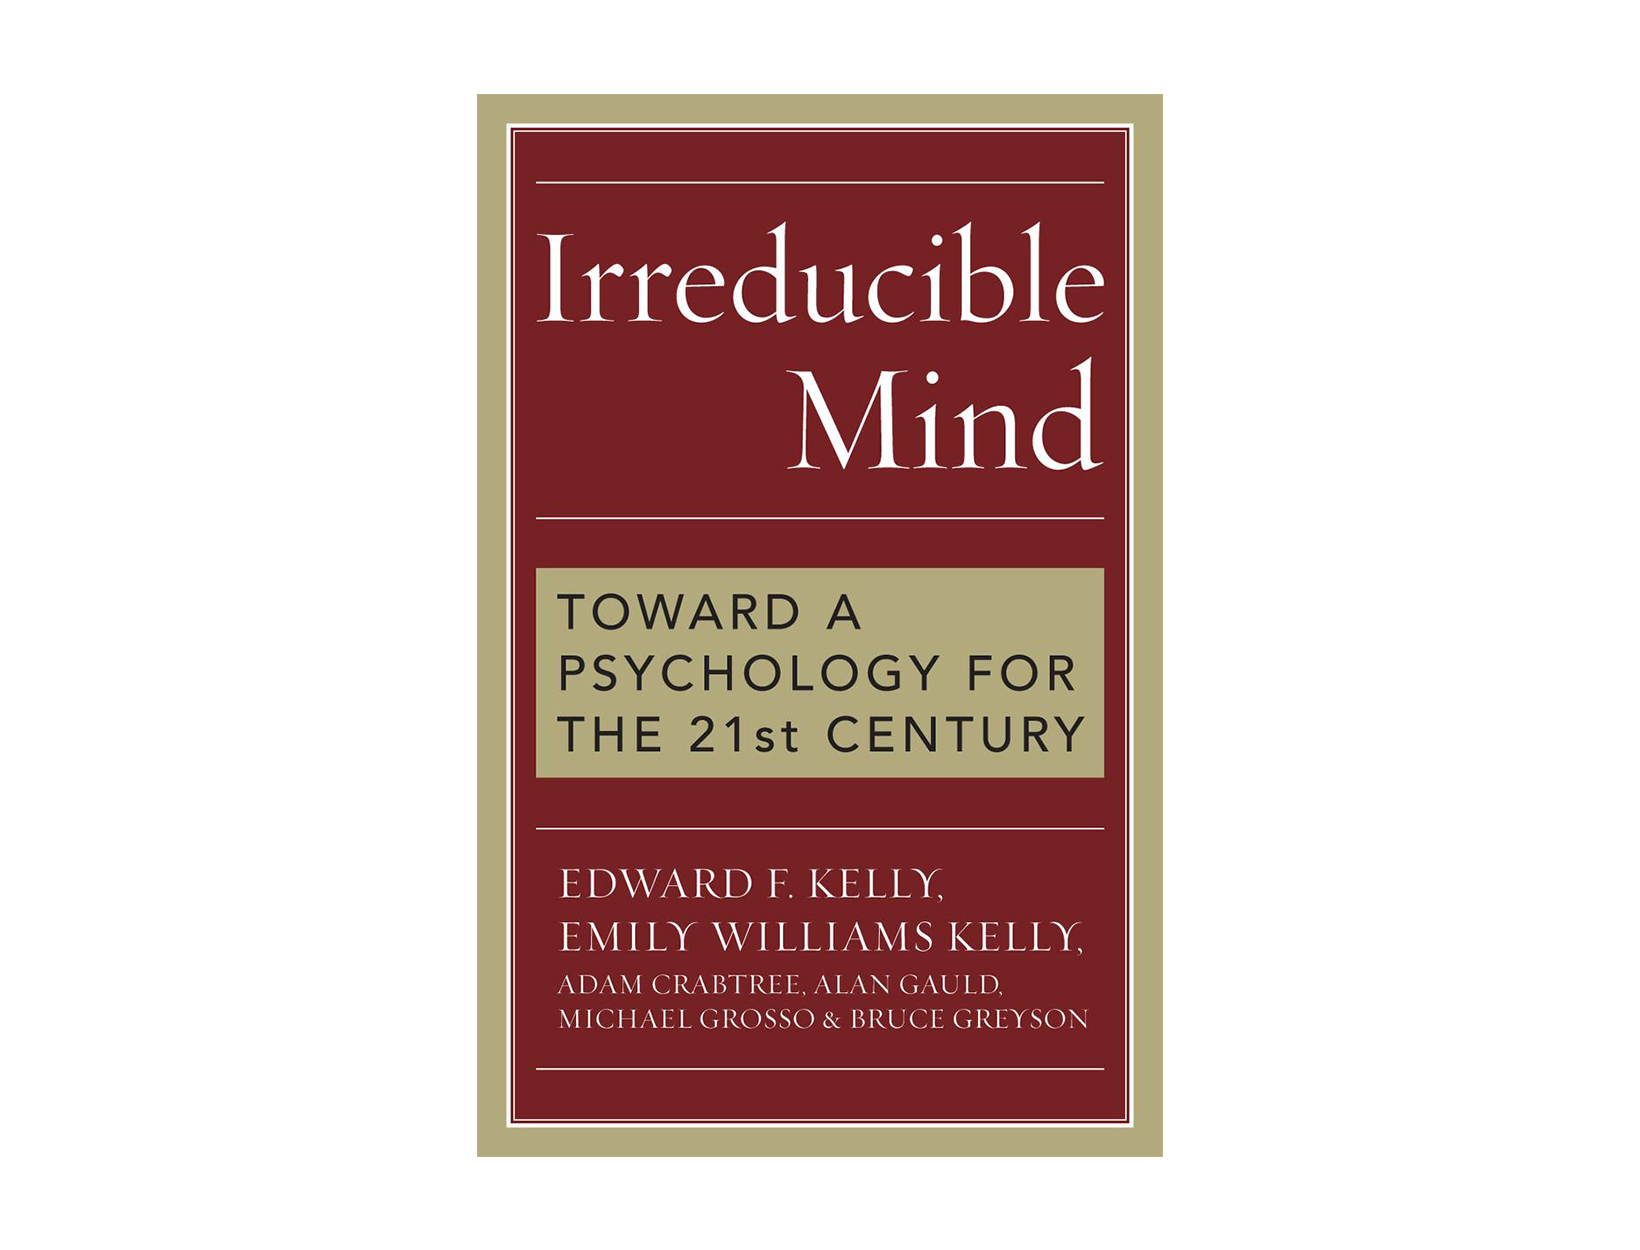 Irreducible Mind: Toward a Psychology for the 21st Century by by Edward Kelly, Ph.D., Emily Williams Kelly, Ph.D., et al.